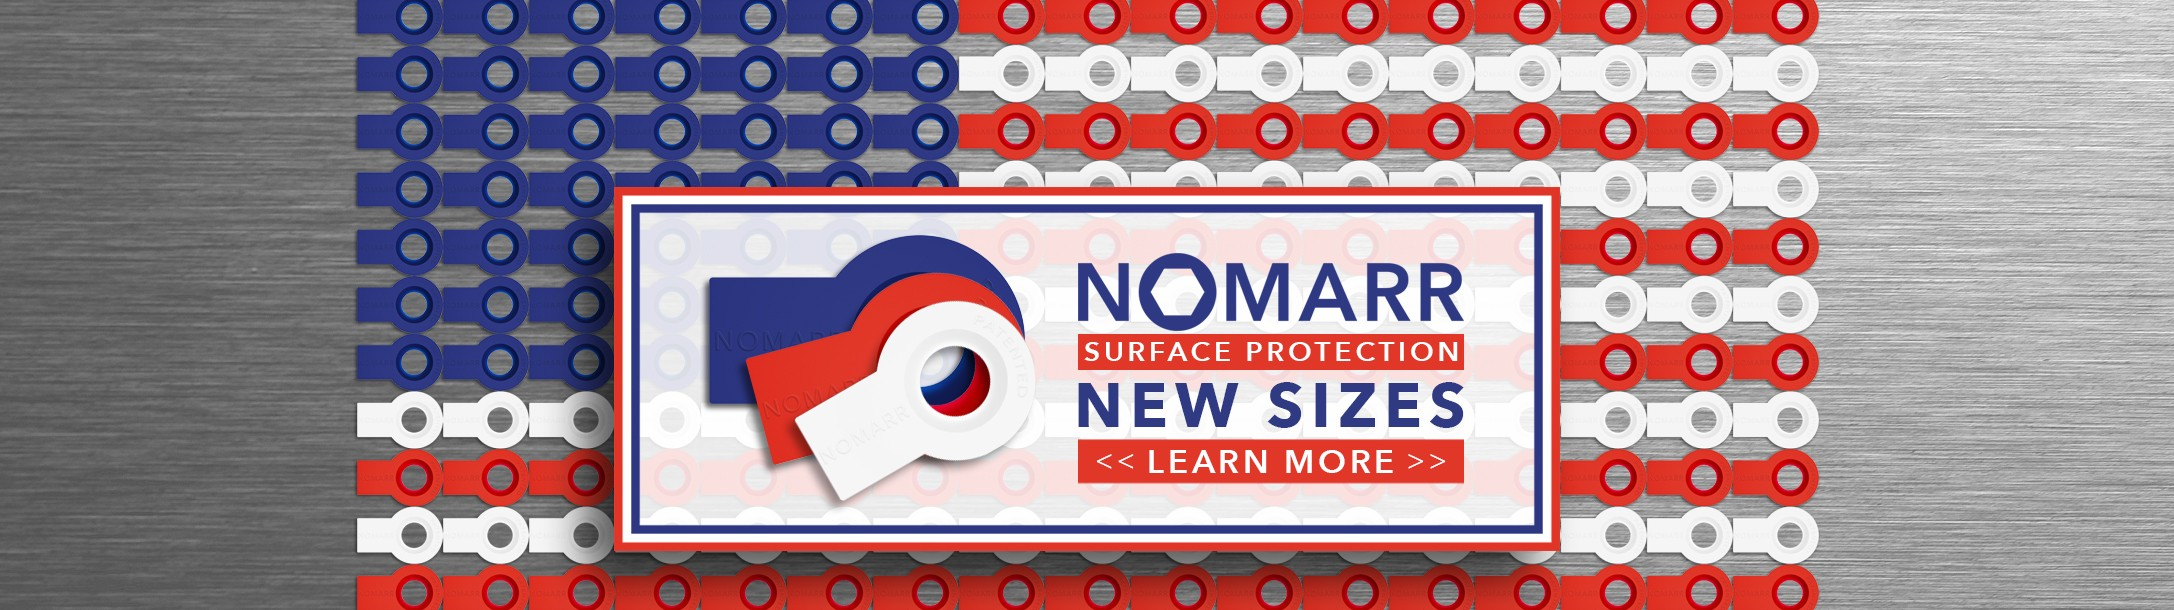 New NOMARR Sizes